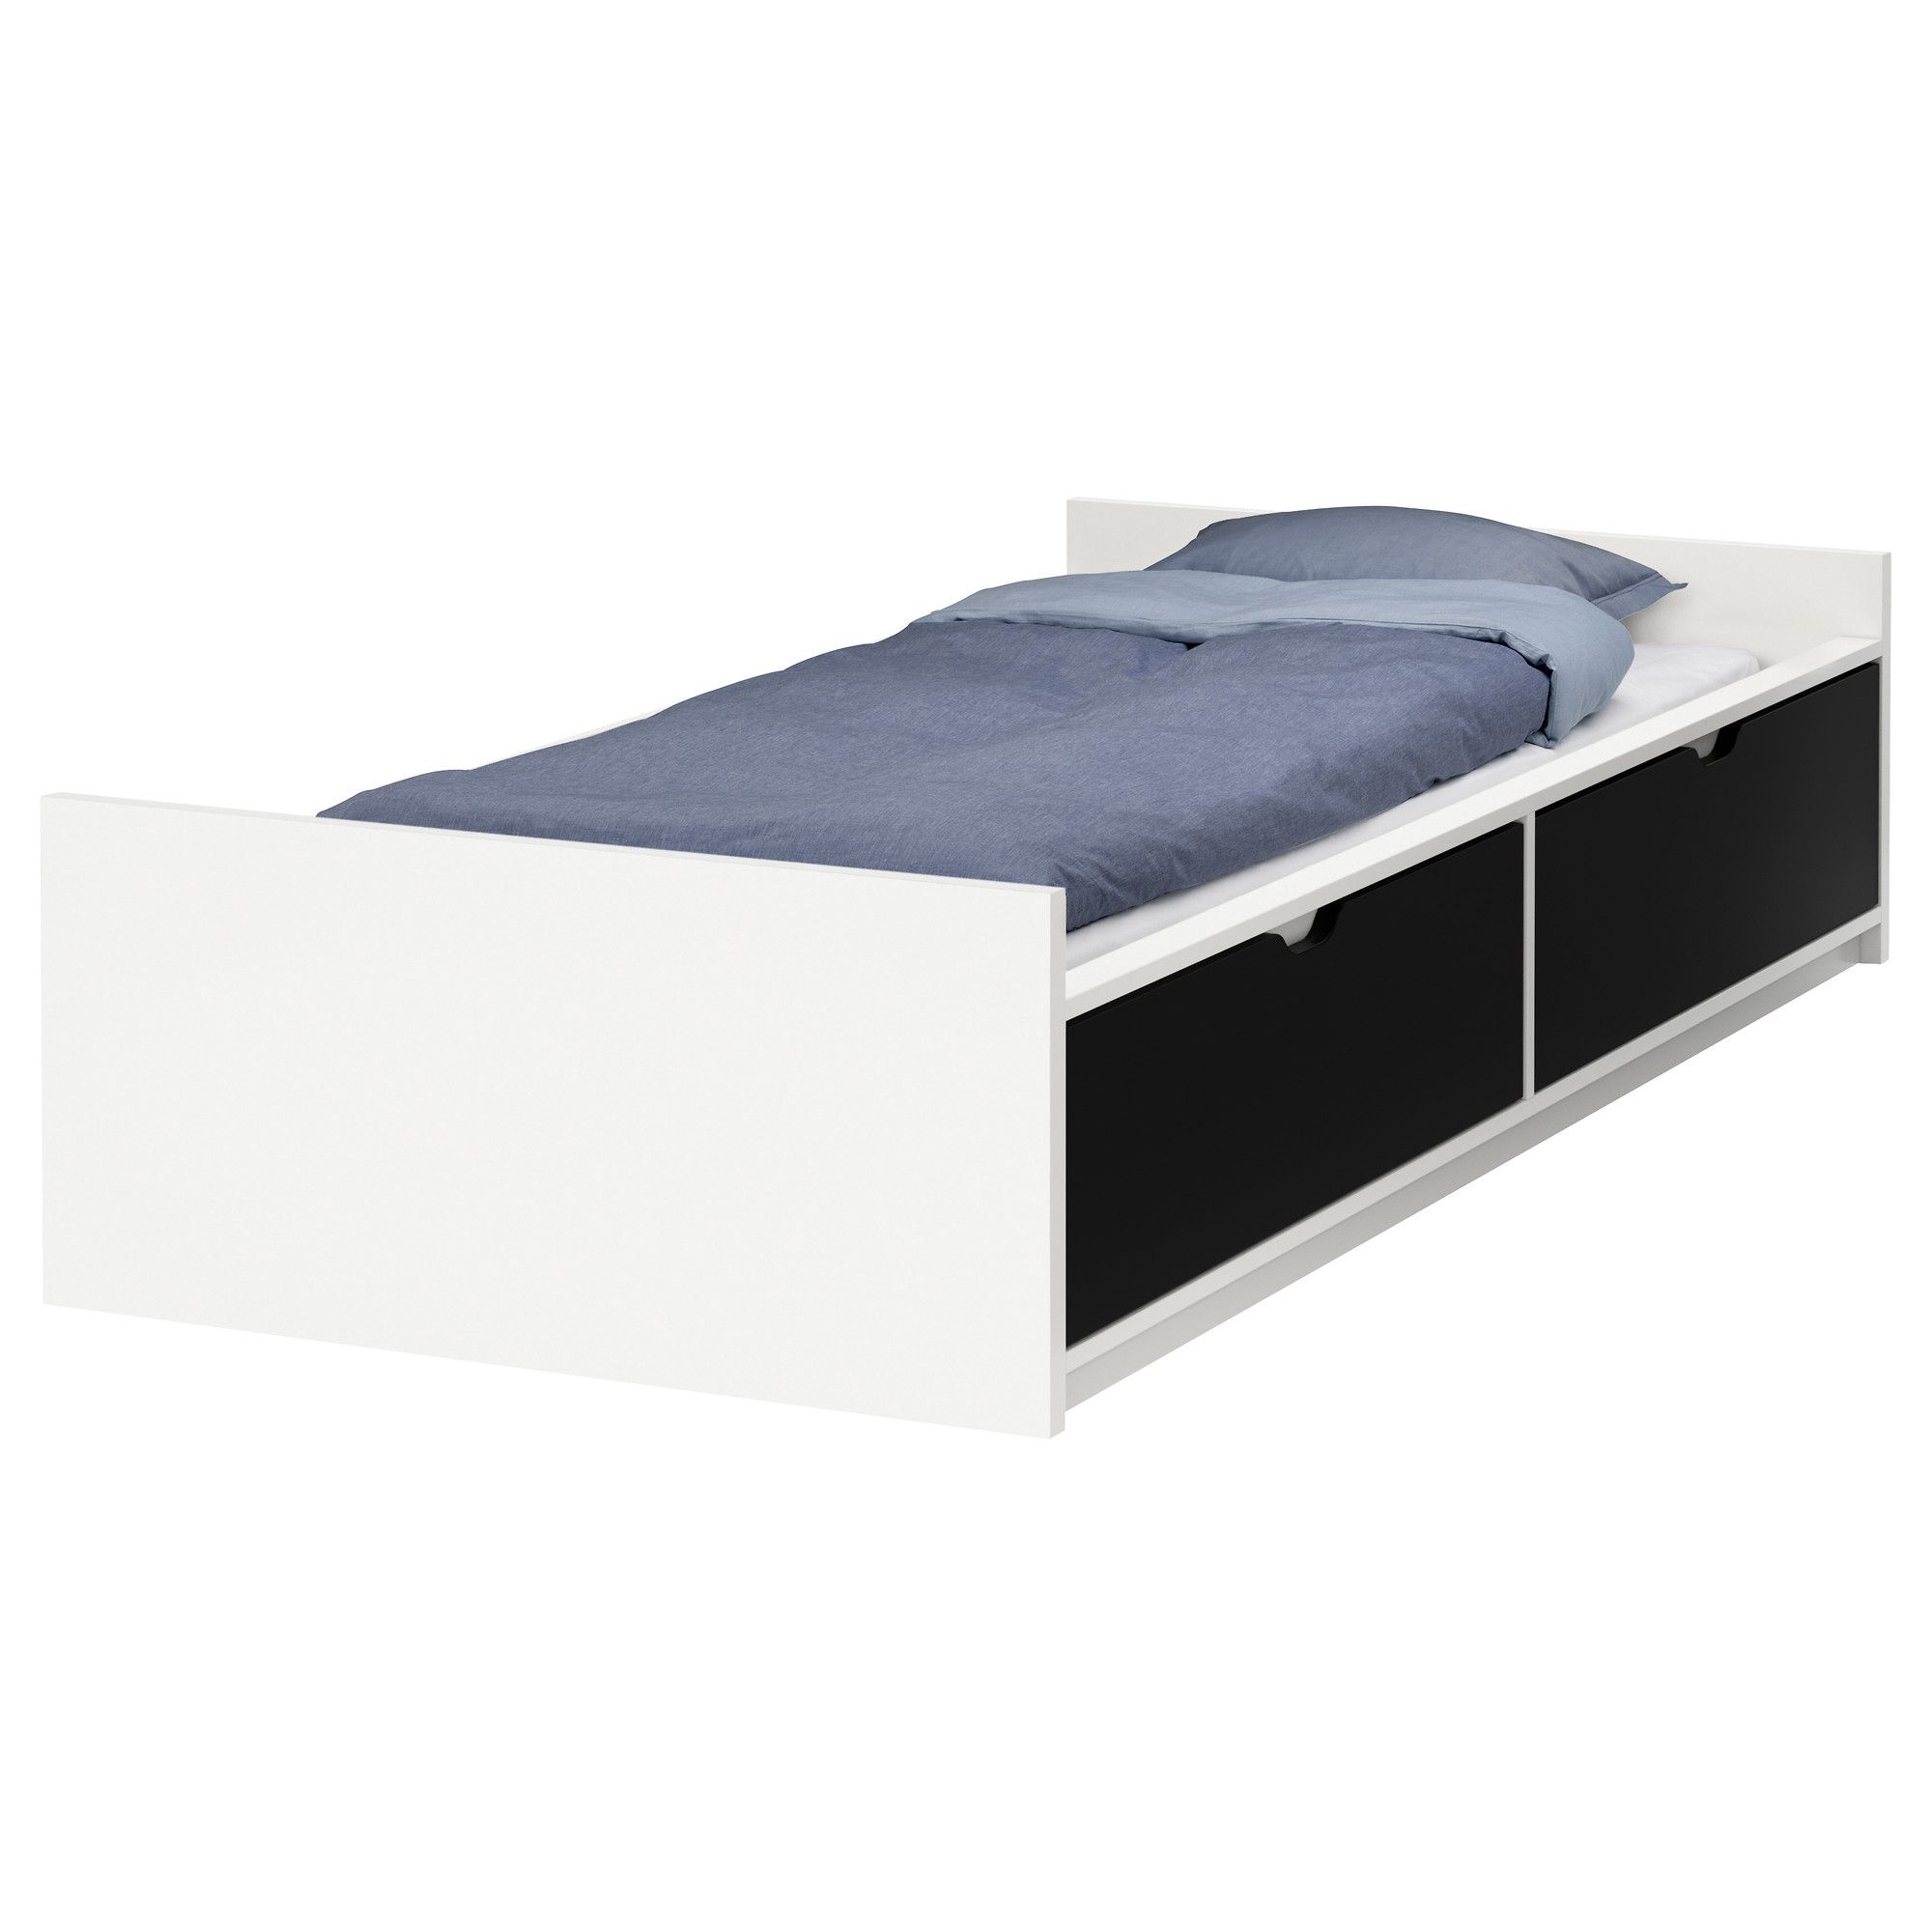 Bed frame design with drawers - Flaxa Bed Frame W Storage Slatted Bedbase Ikea What Color Is Drawer